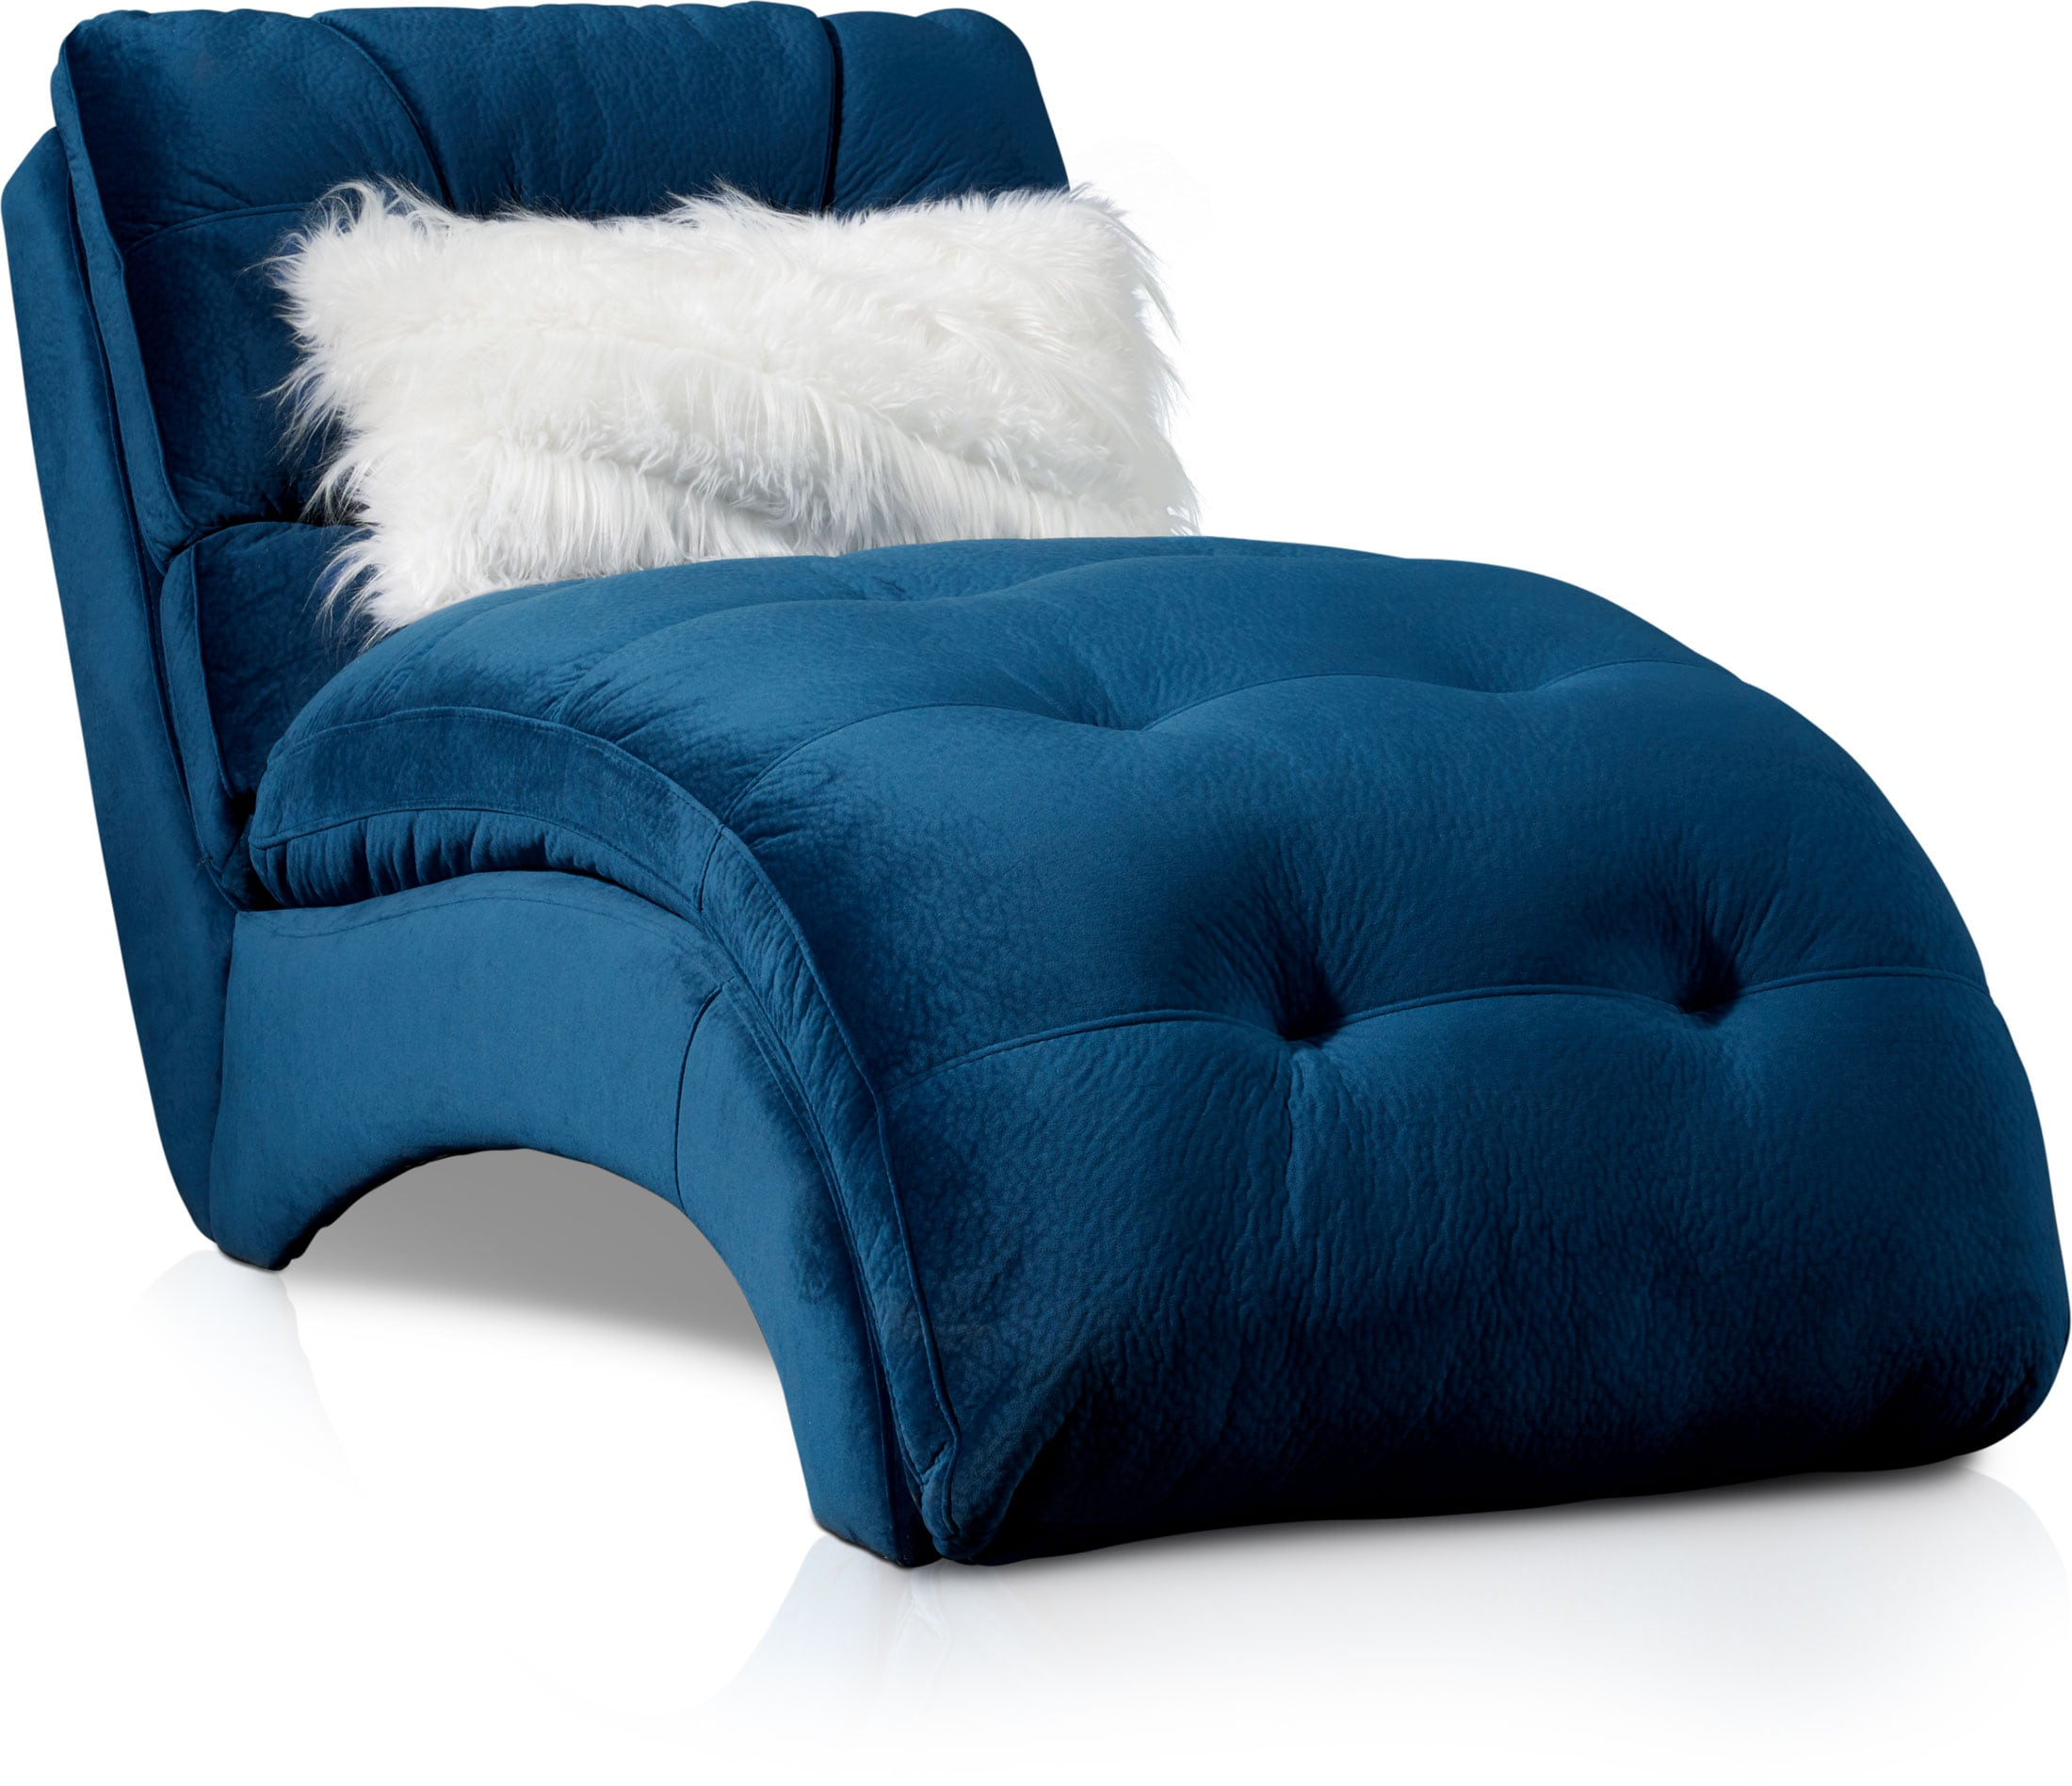 Living Room Furniture - Cordelle Chaise